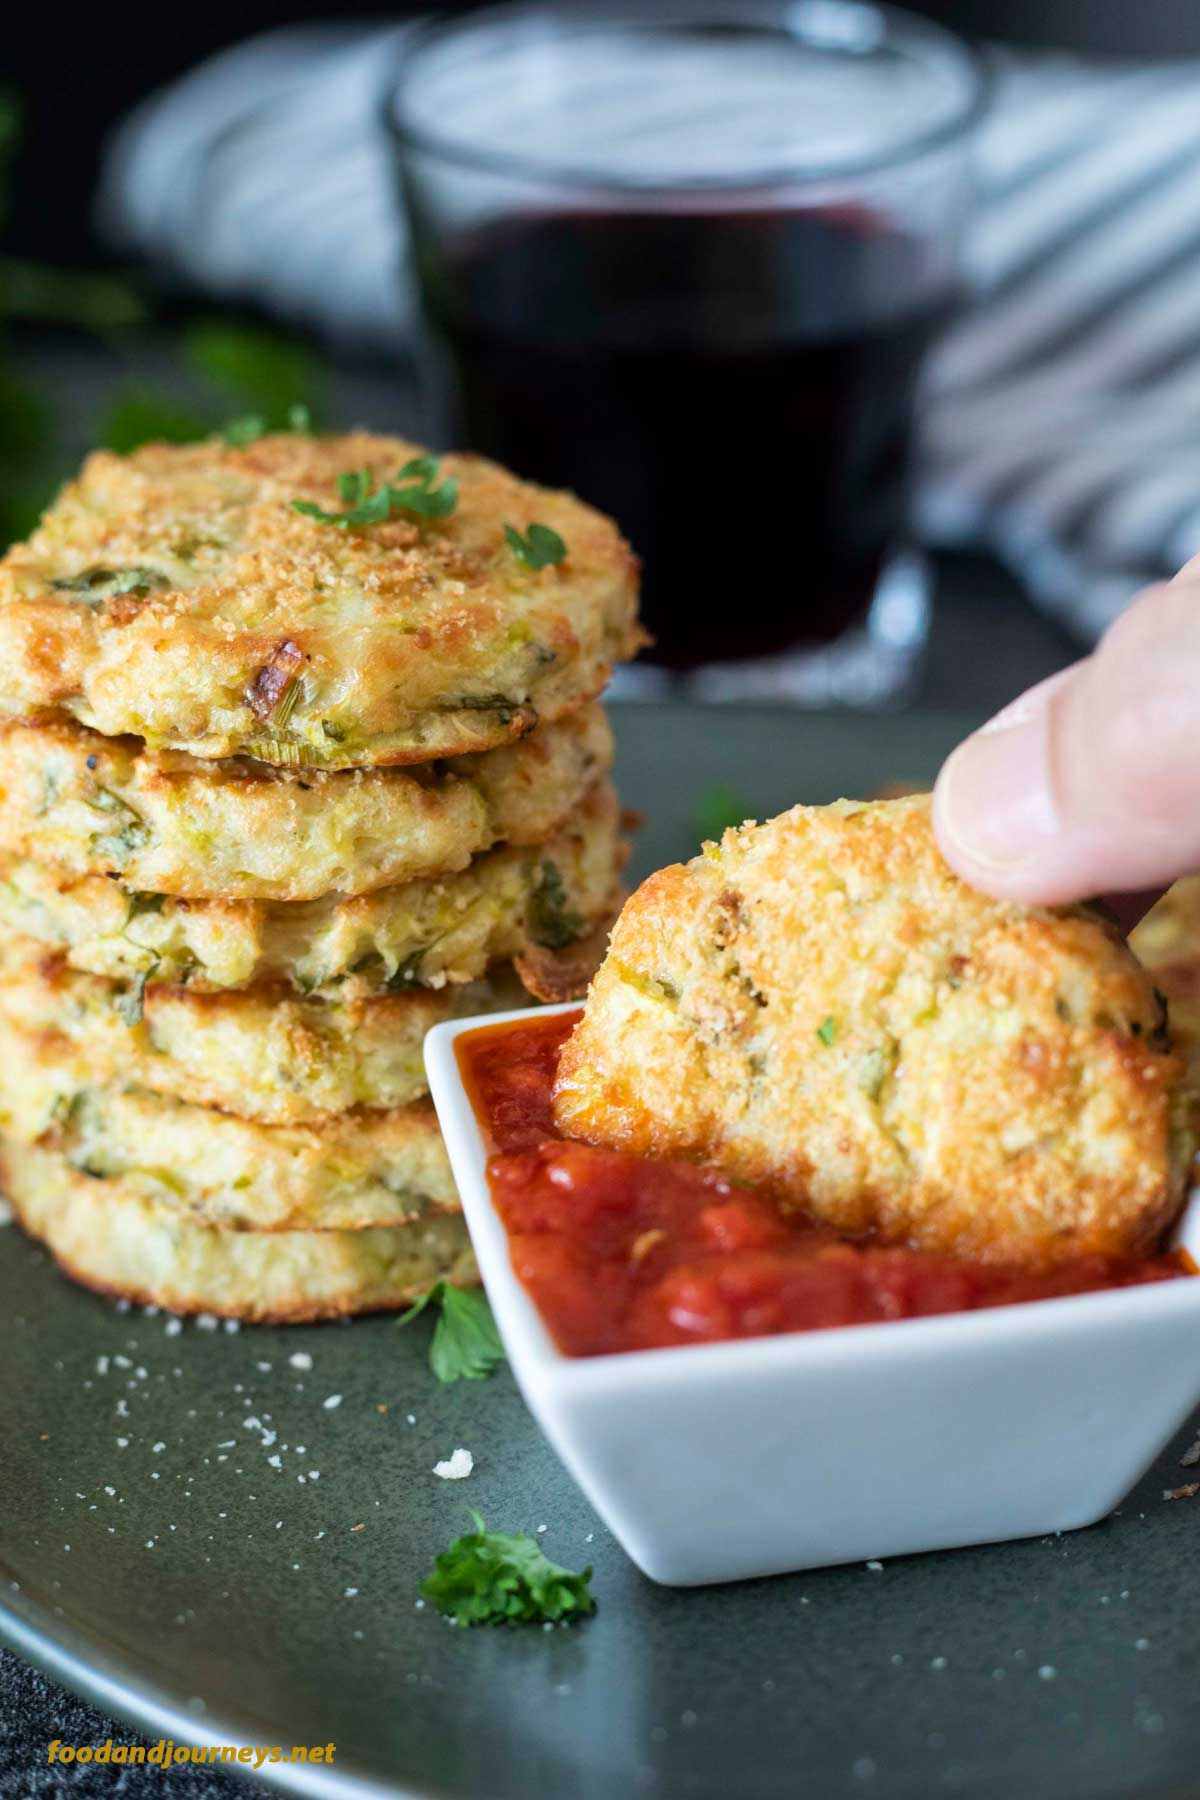 A piece of baked potato and zucchini bite being dipped in marinara sauce, with more fritters served on the plate. These bites are an even better version of mashed potato pancakes; each fritter does not only contain mashed potato, but grated zucchini, parmesan and herbs as well. All of which are clearly visible in this image.